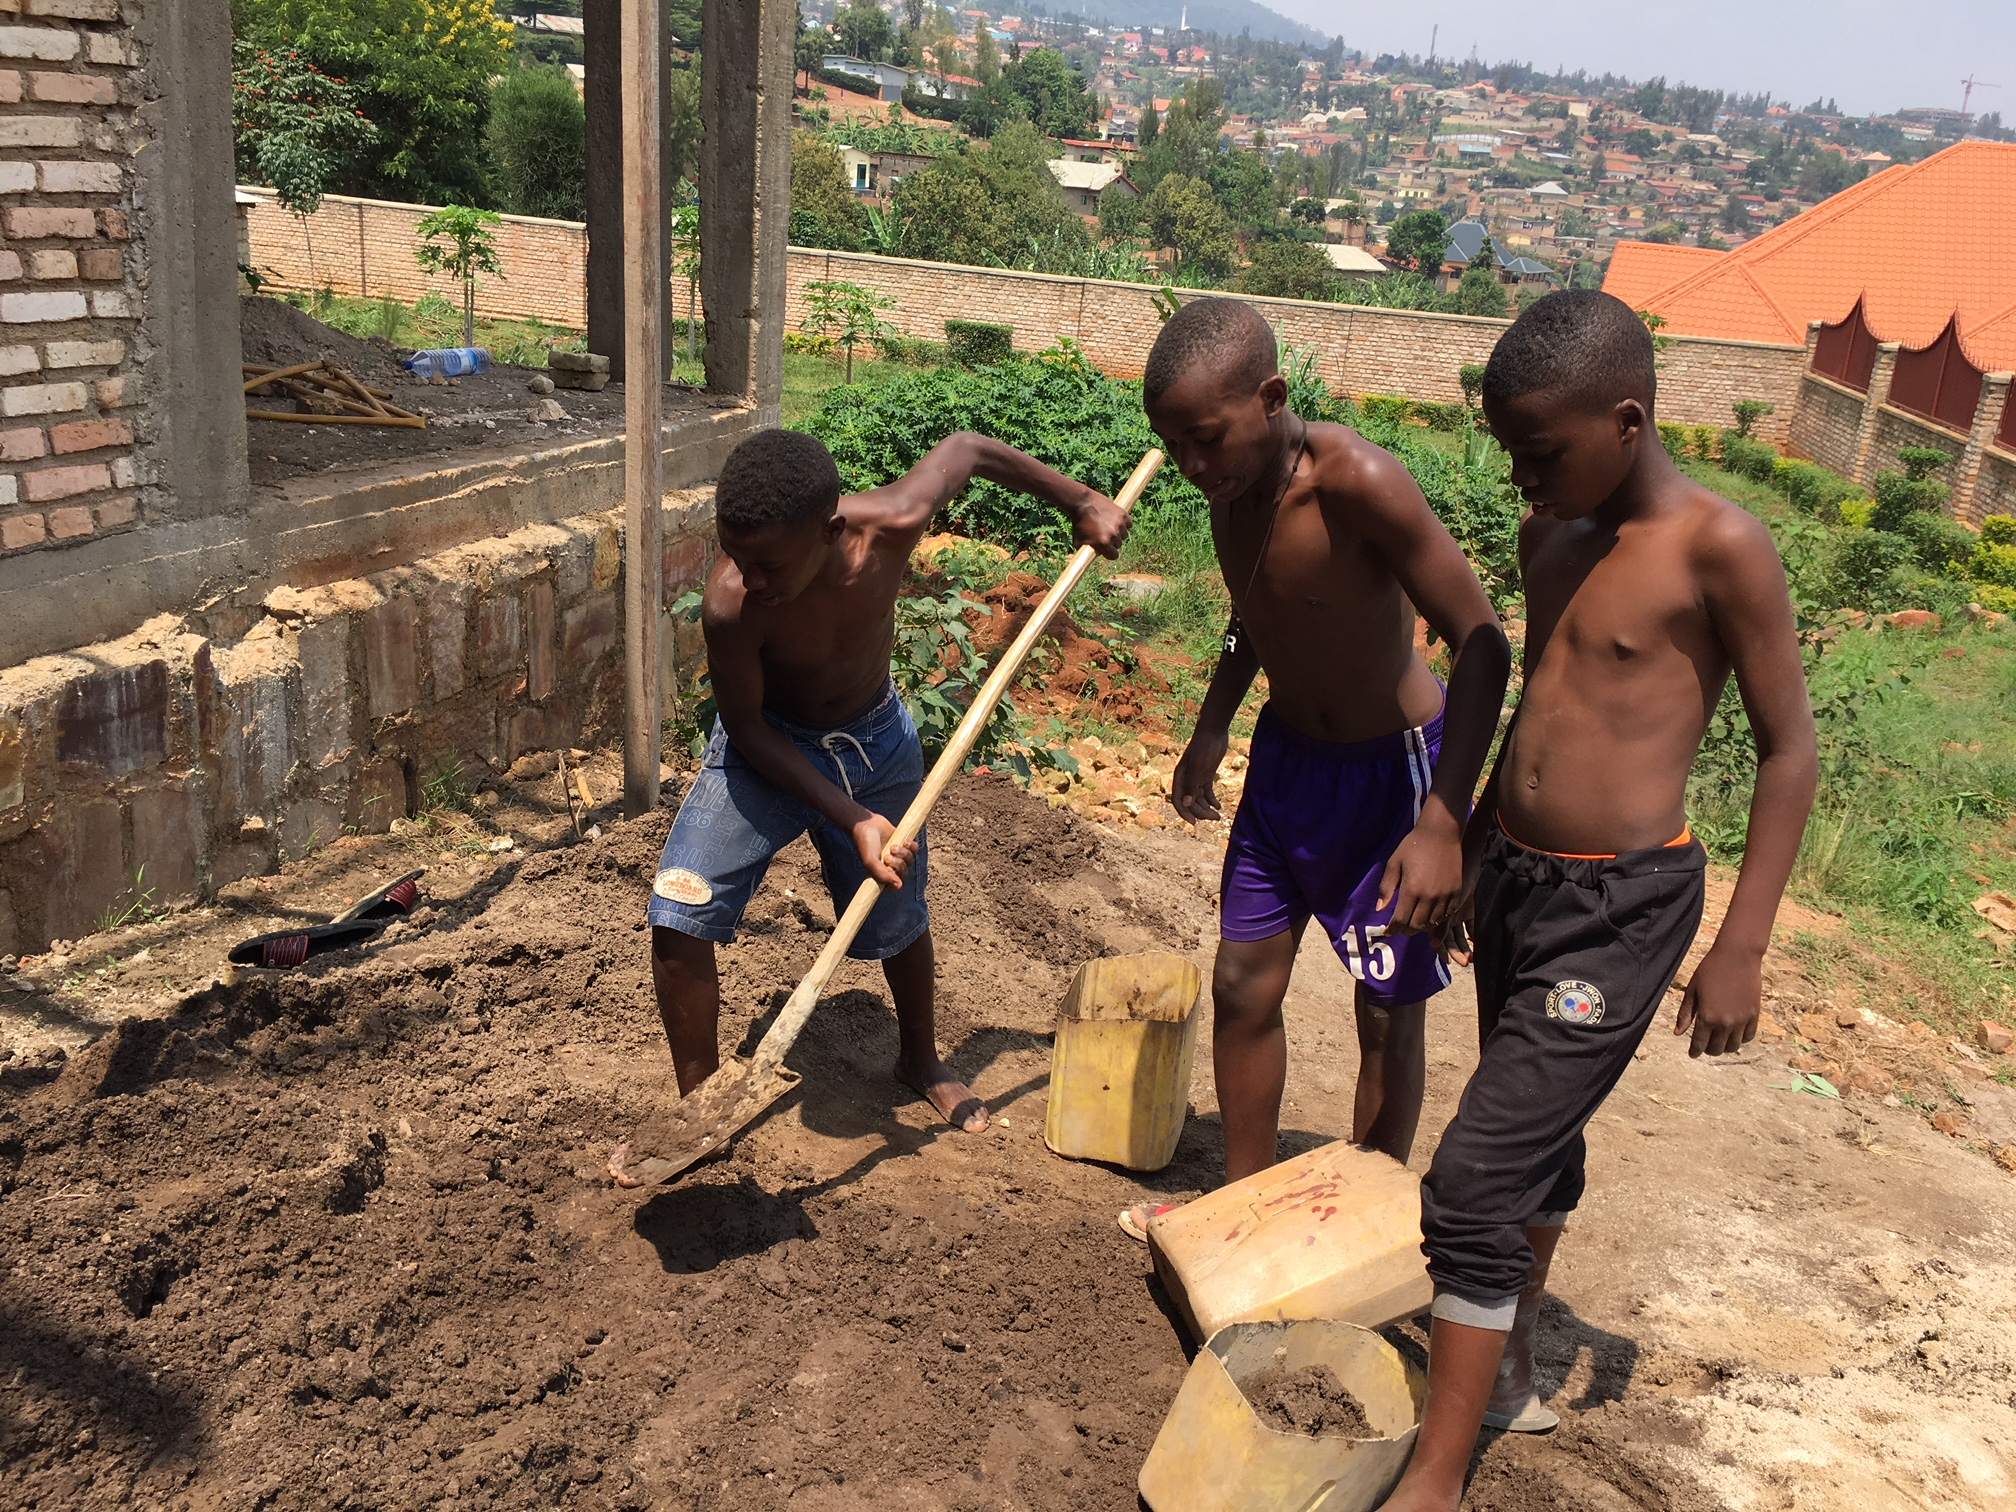 Yves, Ishimwe, and Joel worked really hard this day. It was fun joining them and witnessing how they aren't so little anymore